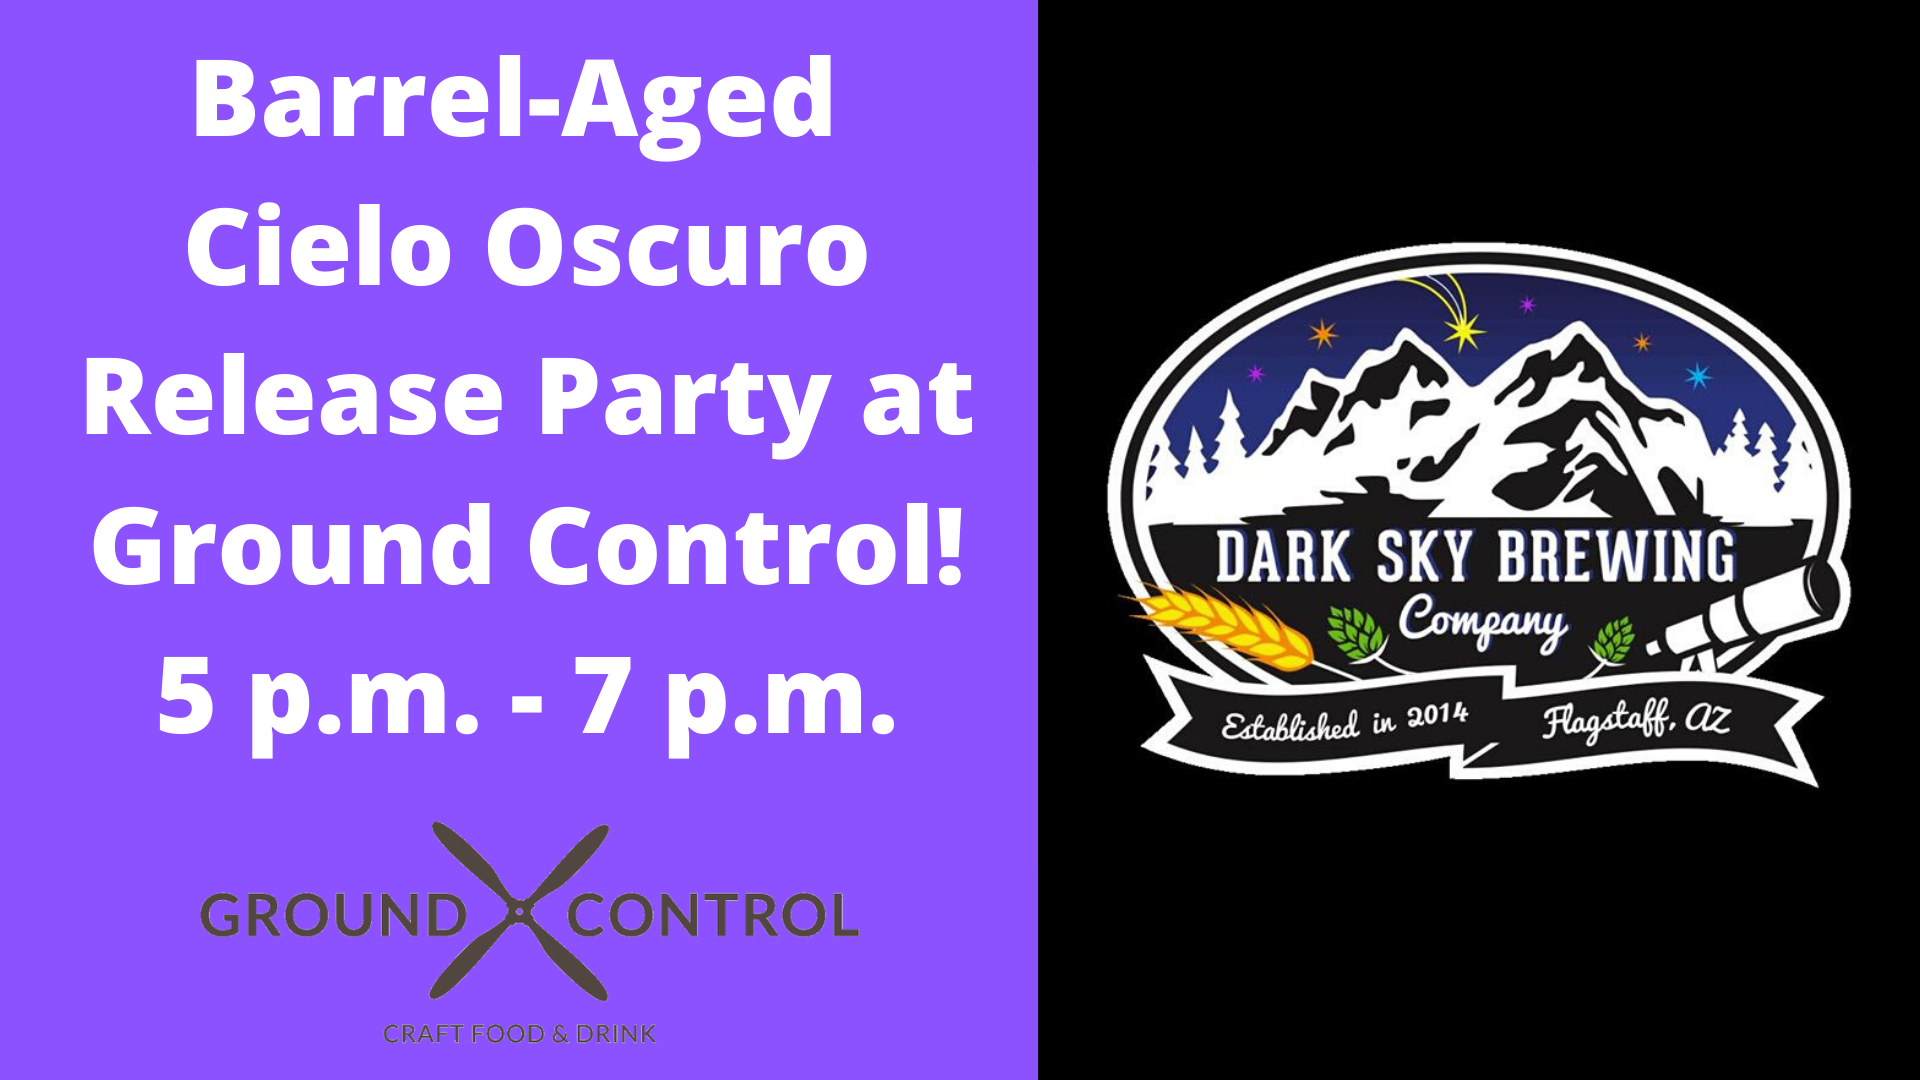 DARK SKY BARREL-AGED CIELO OSCURO BATCH 2 RELEASE